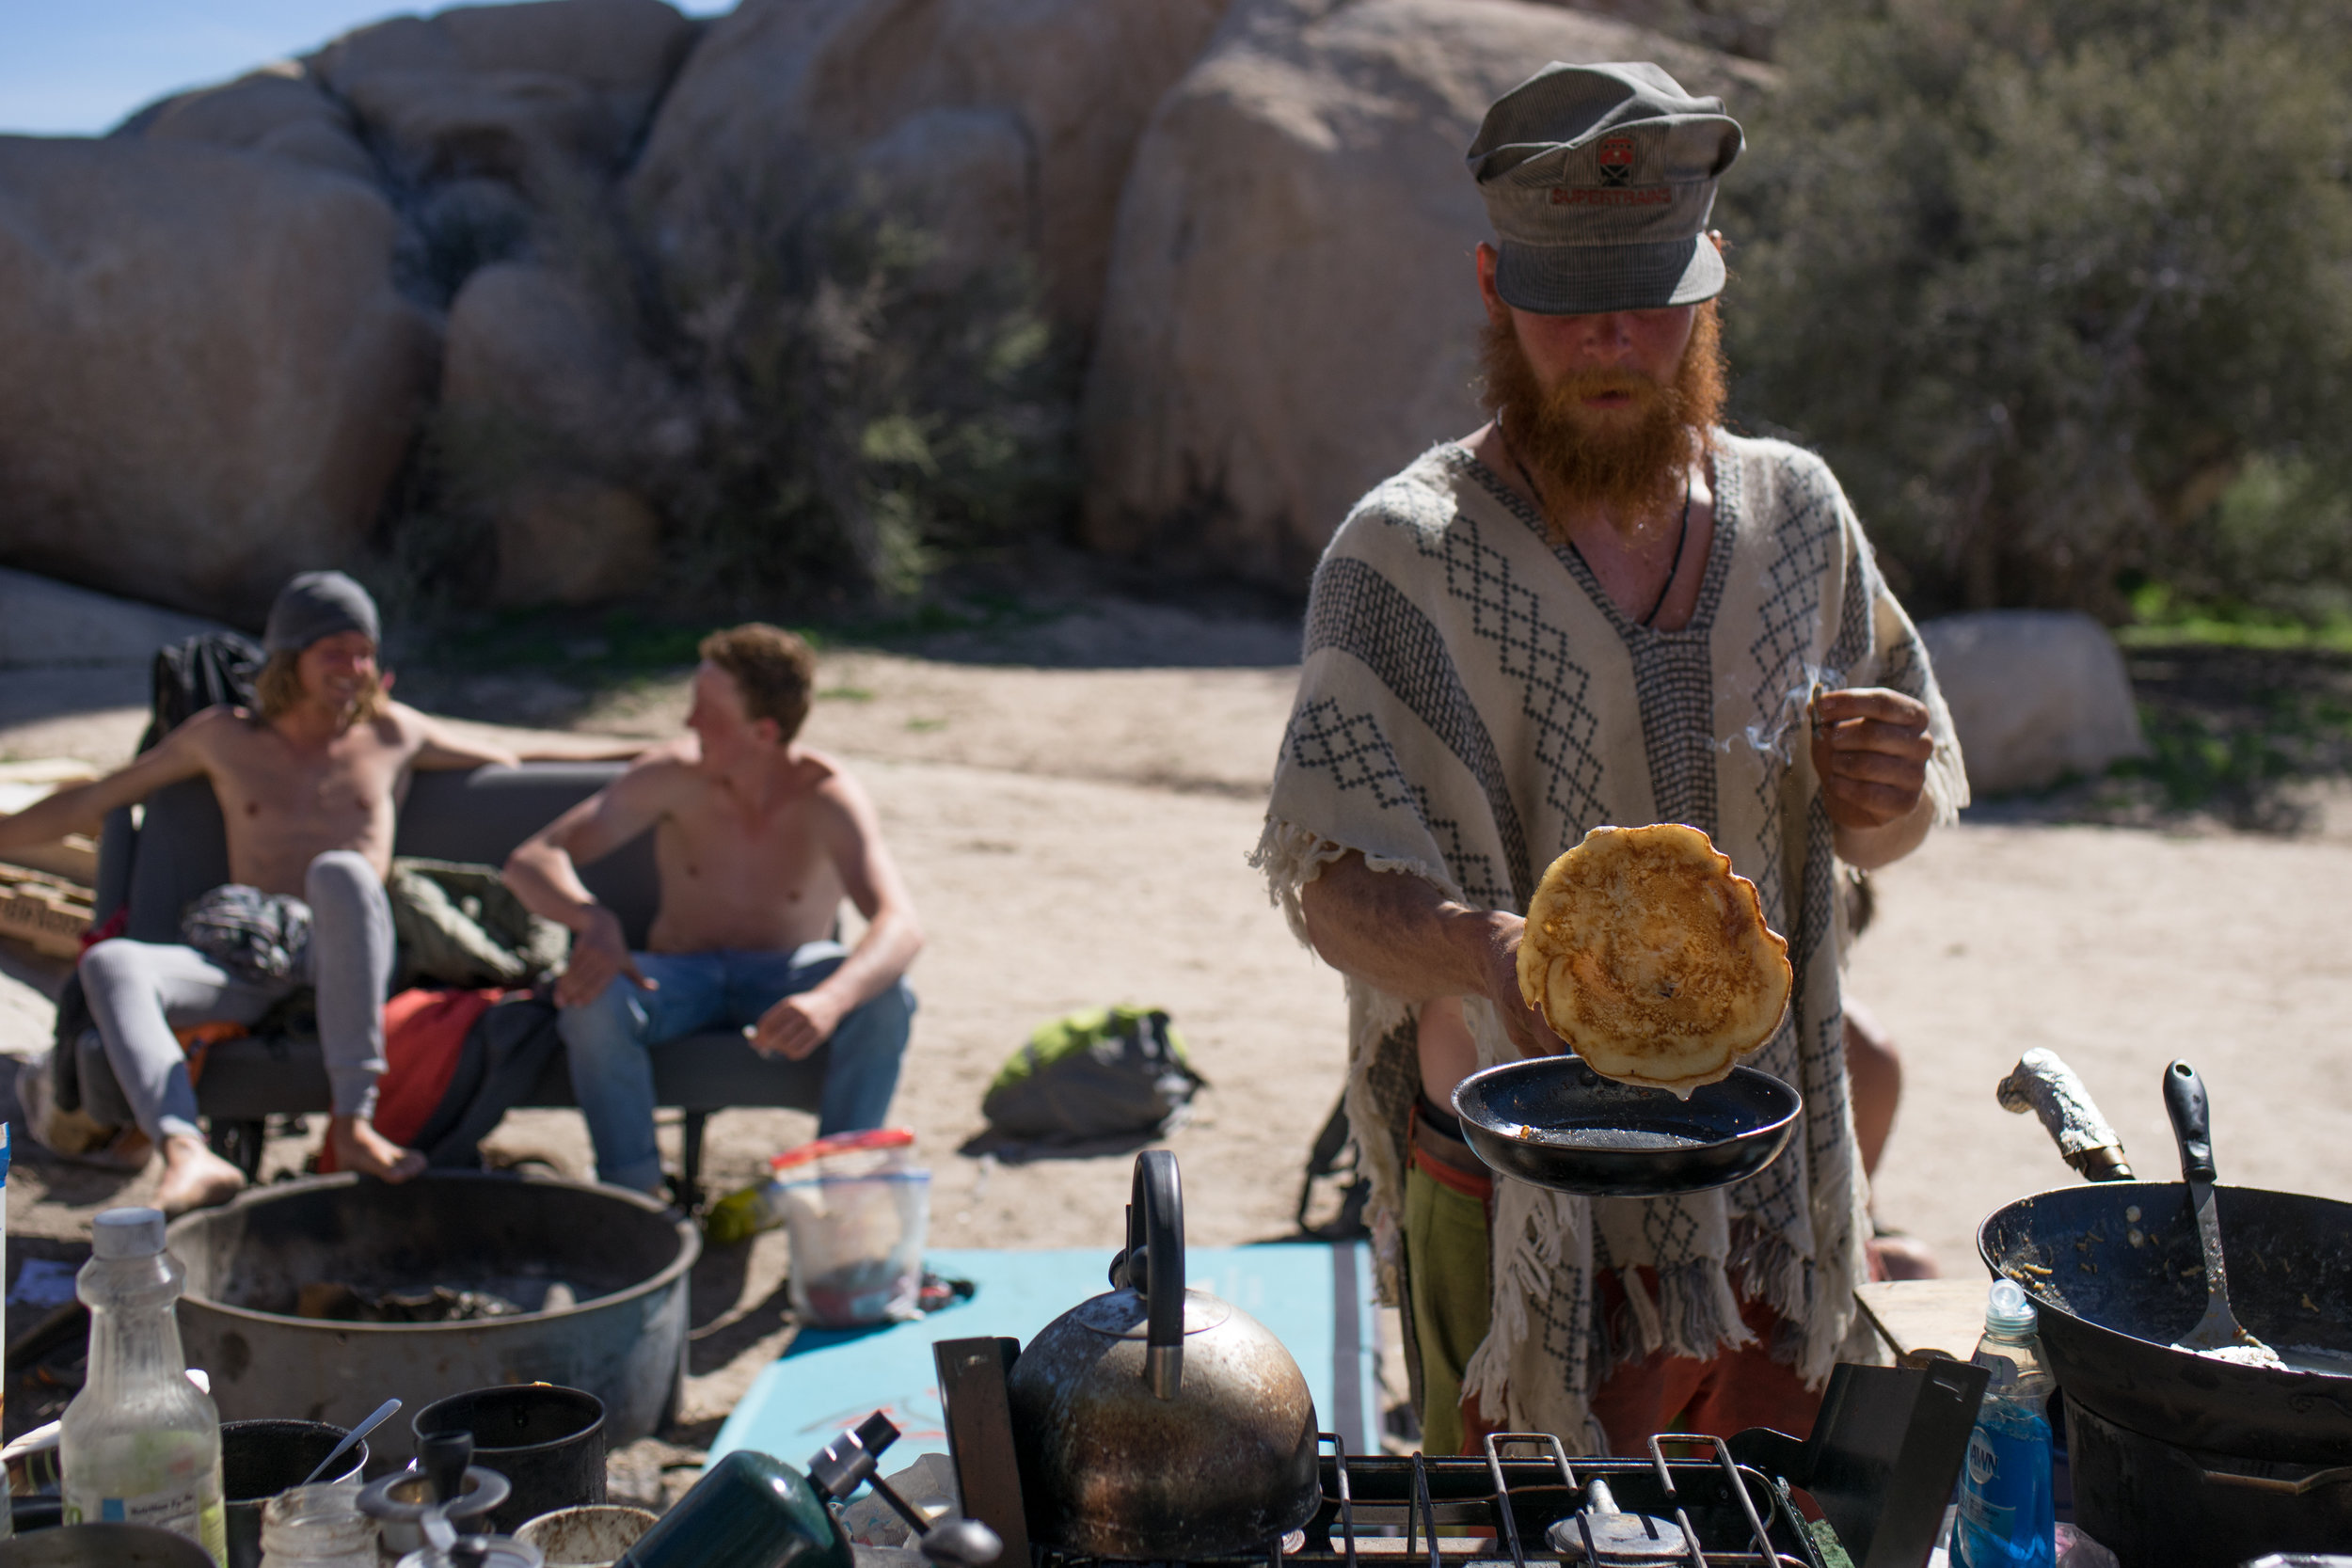 A climber cooks breakfast from the previous night's leftovers, while climbers from other campsites socialize around the campfire.